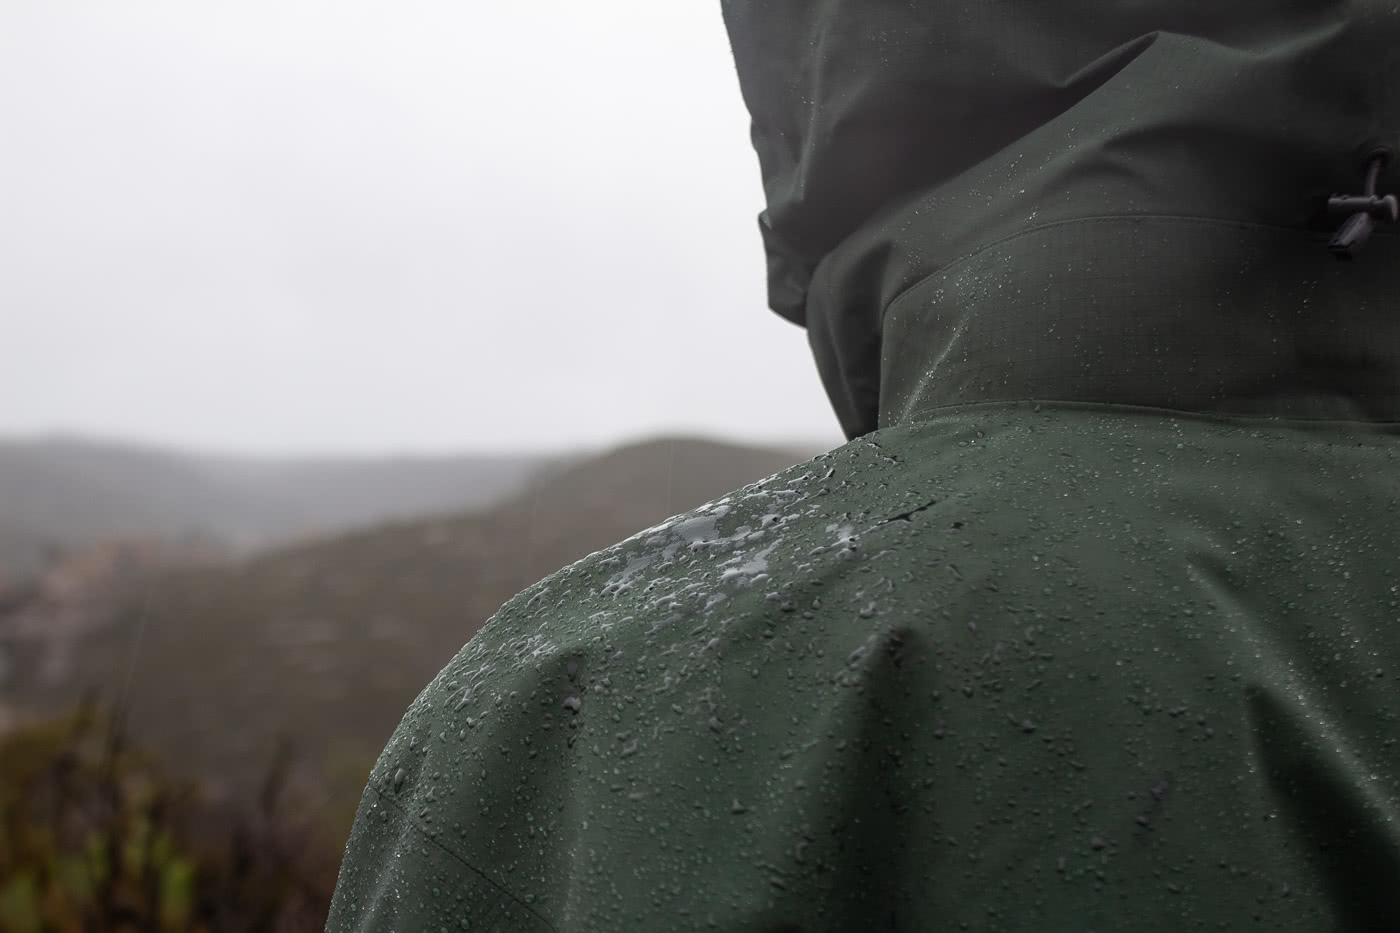 Arc'teryx Beta AR and Alpha SV Waterproof Jackets // Gear Review by Mike Ashelford beading on the jacket